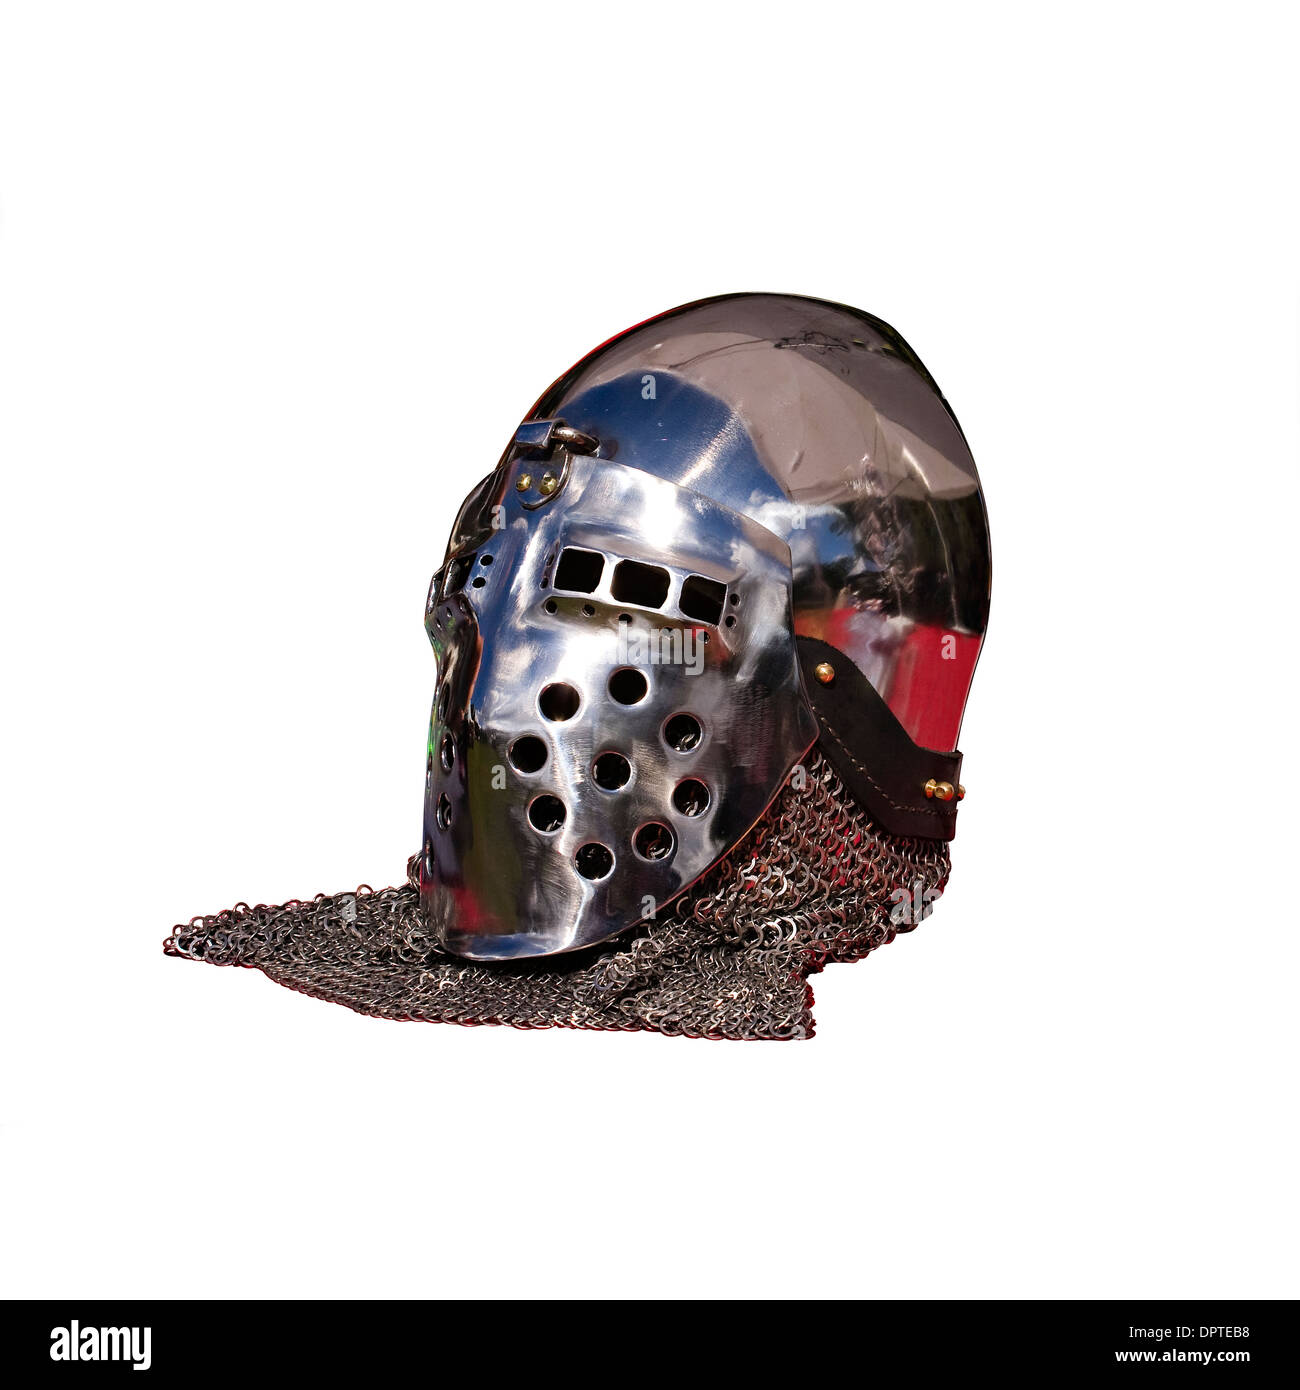 Cut Out. Medieval Knight's Helmet of shining armor and chain mail on white background - Stock Image